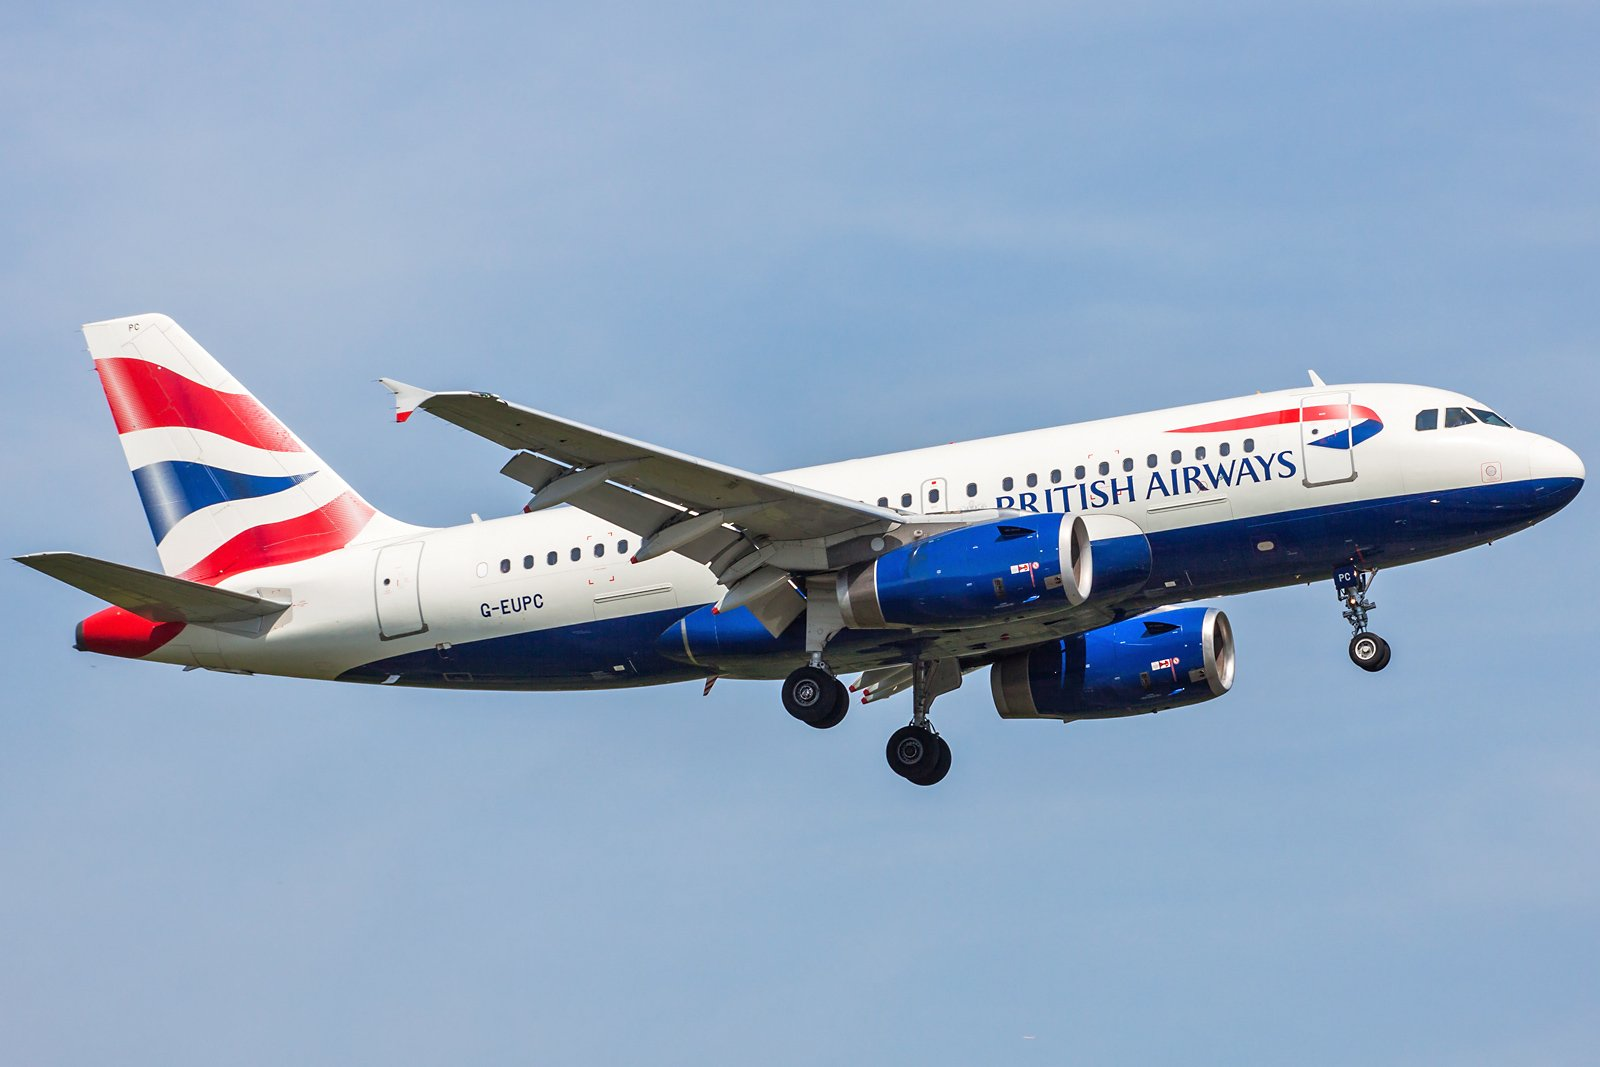 British Airways Airbus A319-131 G-EUPC